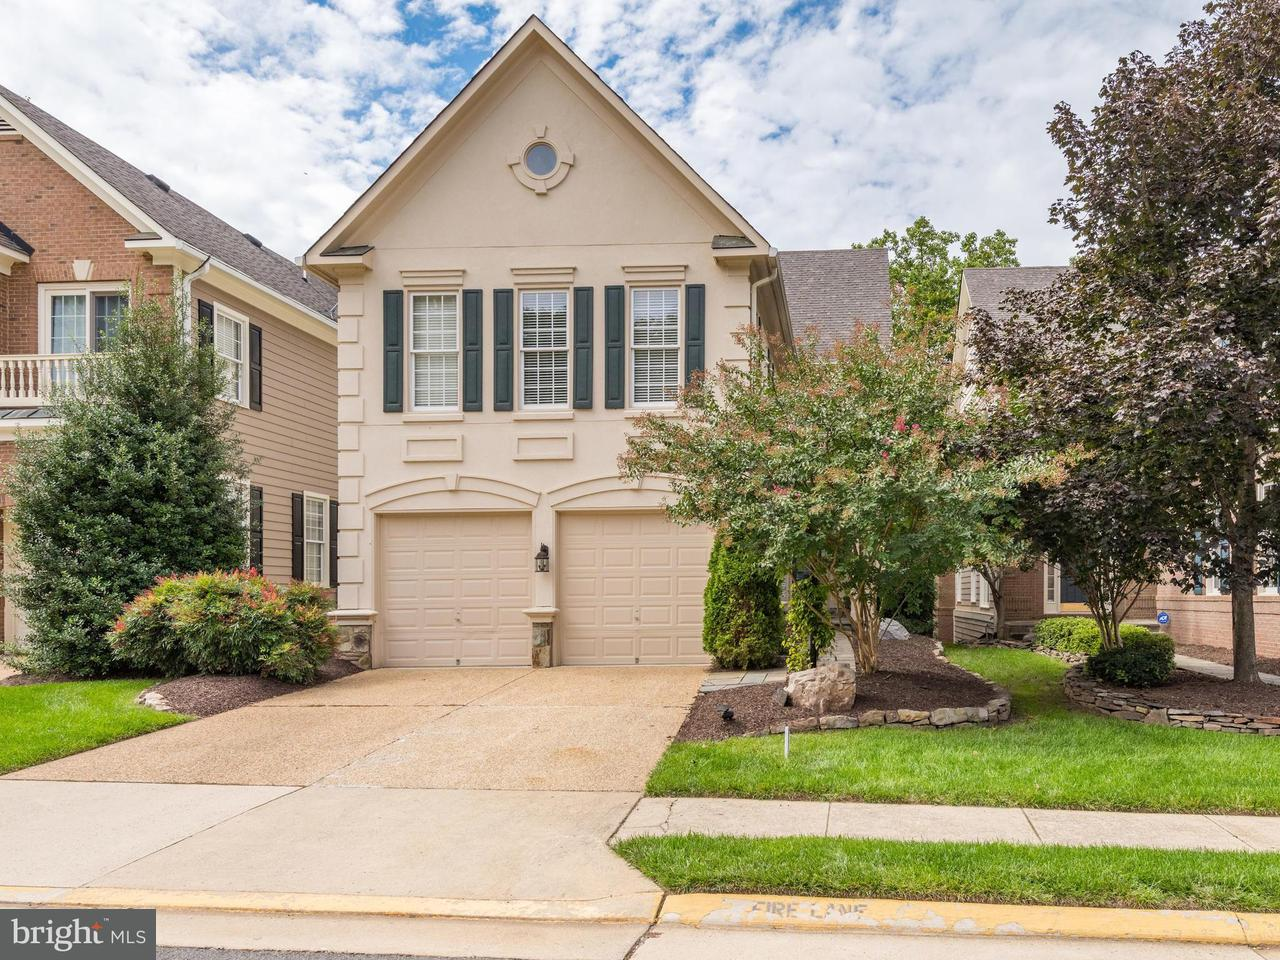 Single Family Home for Sale at 20271 ISLAND VIEW Court 20271 ISLAND VIEW Court Sterling, Virginia 20165 United States